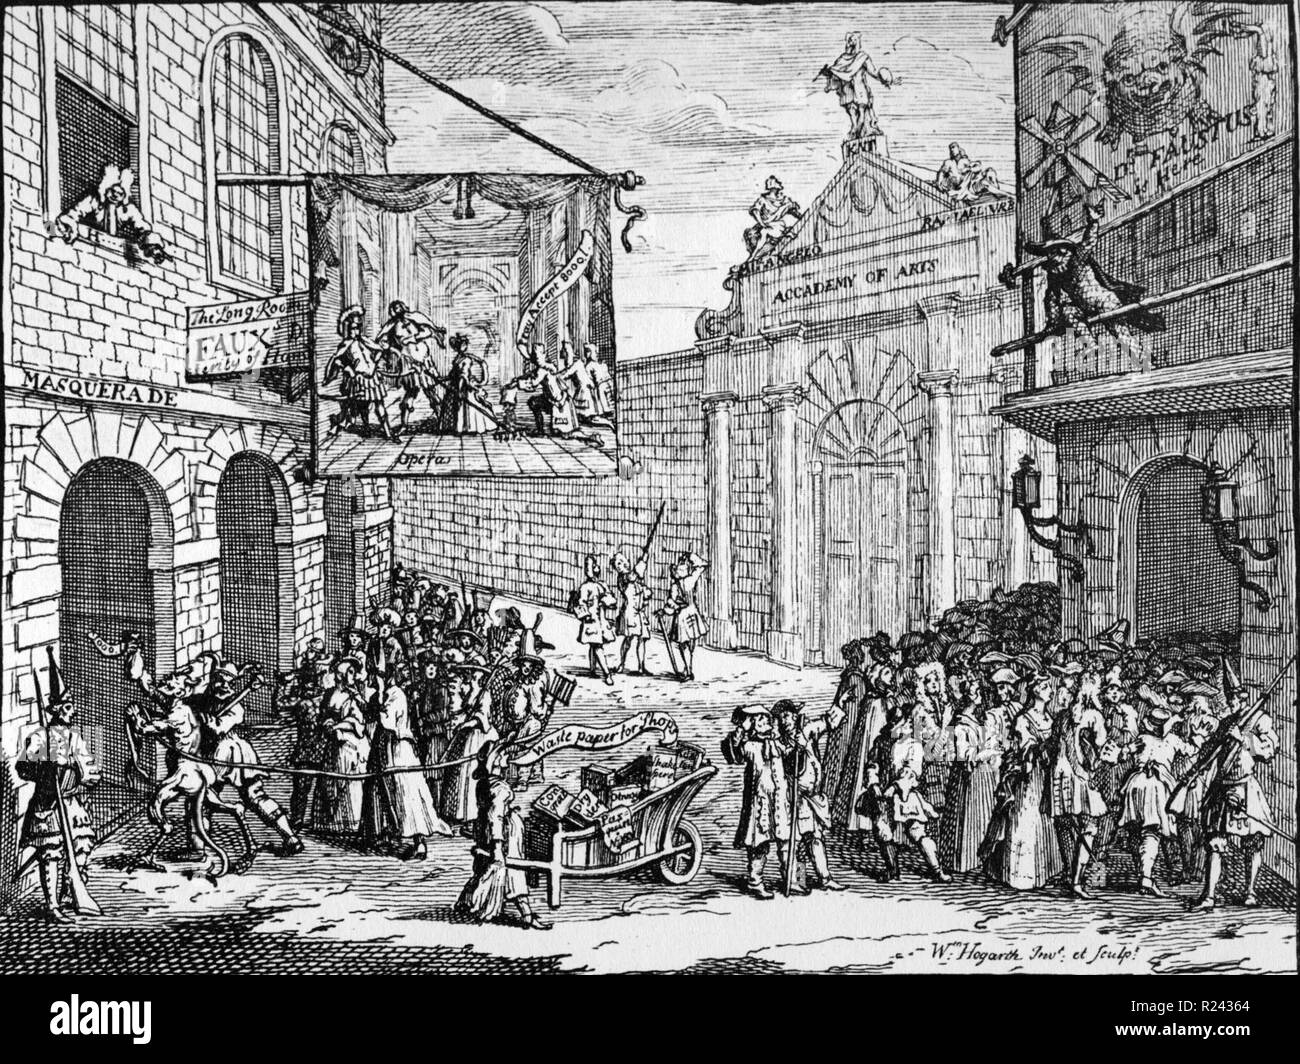 Engraving by British artist & engraver, William Hogarth 1697-1764: The Bad Taste of the Town (also known as Masquerades and Operas) is an early print by William Hogarth, published in February 1723/24 18th century - Stock Image